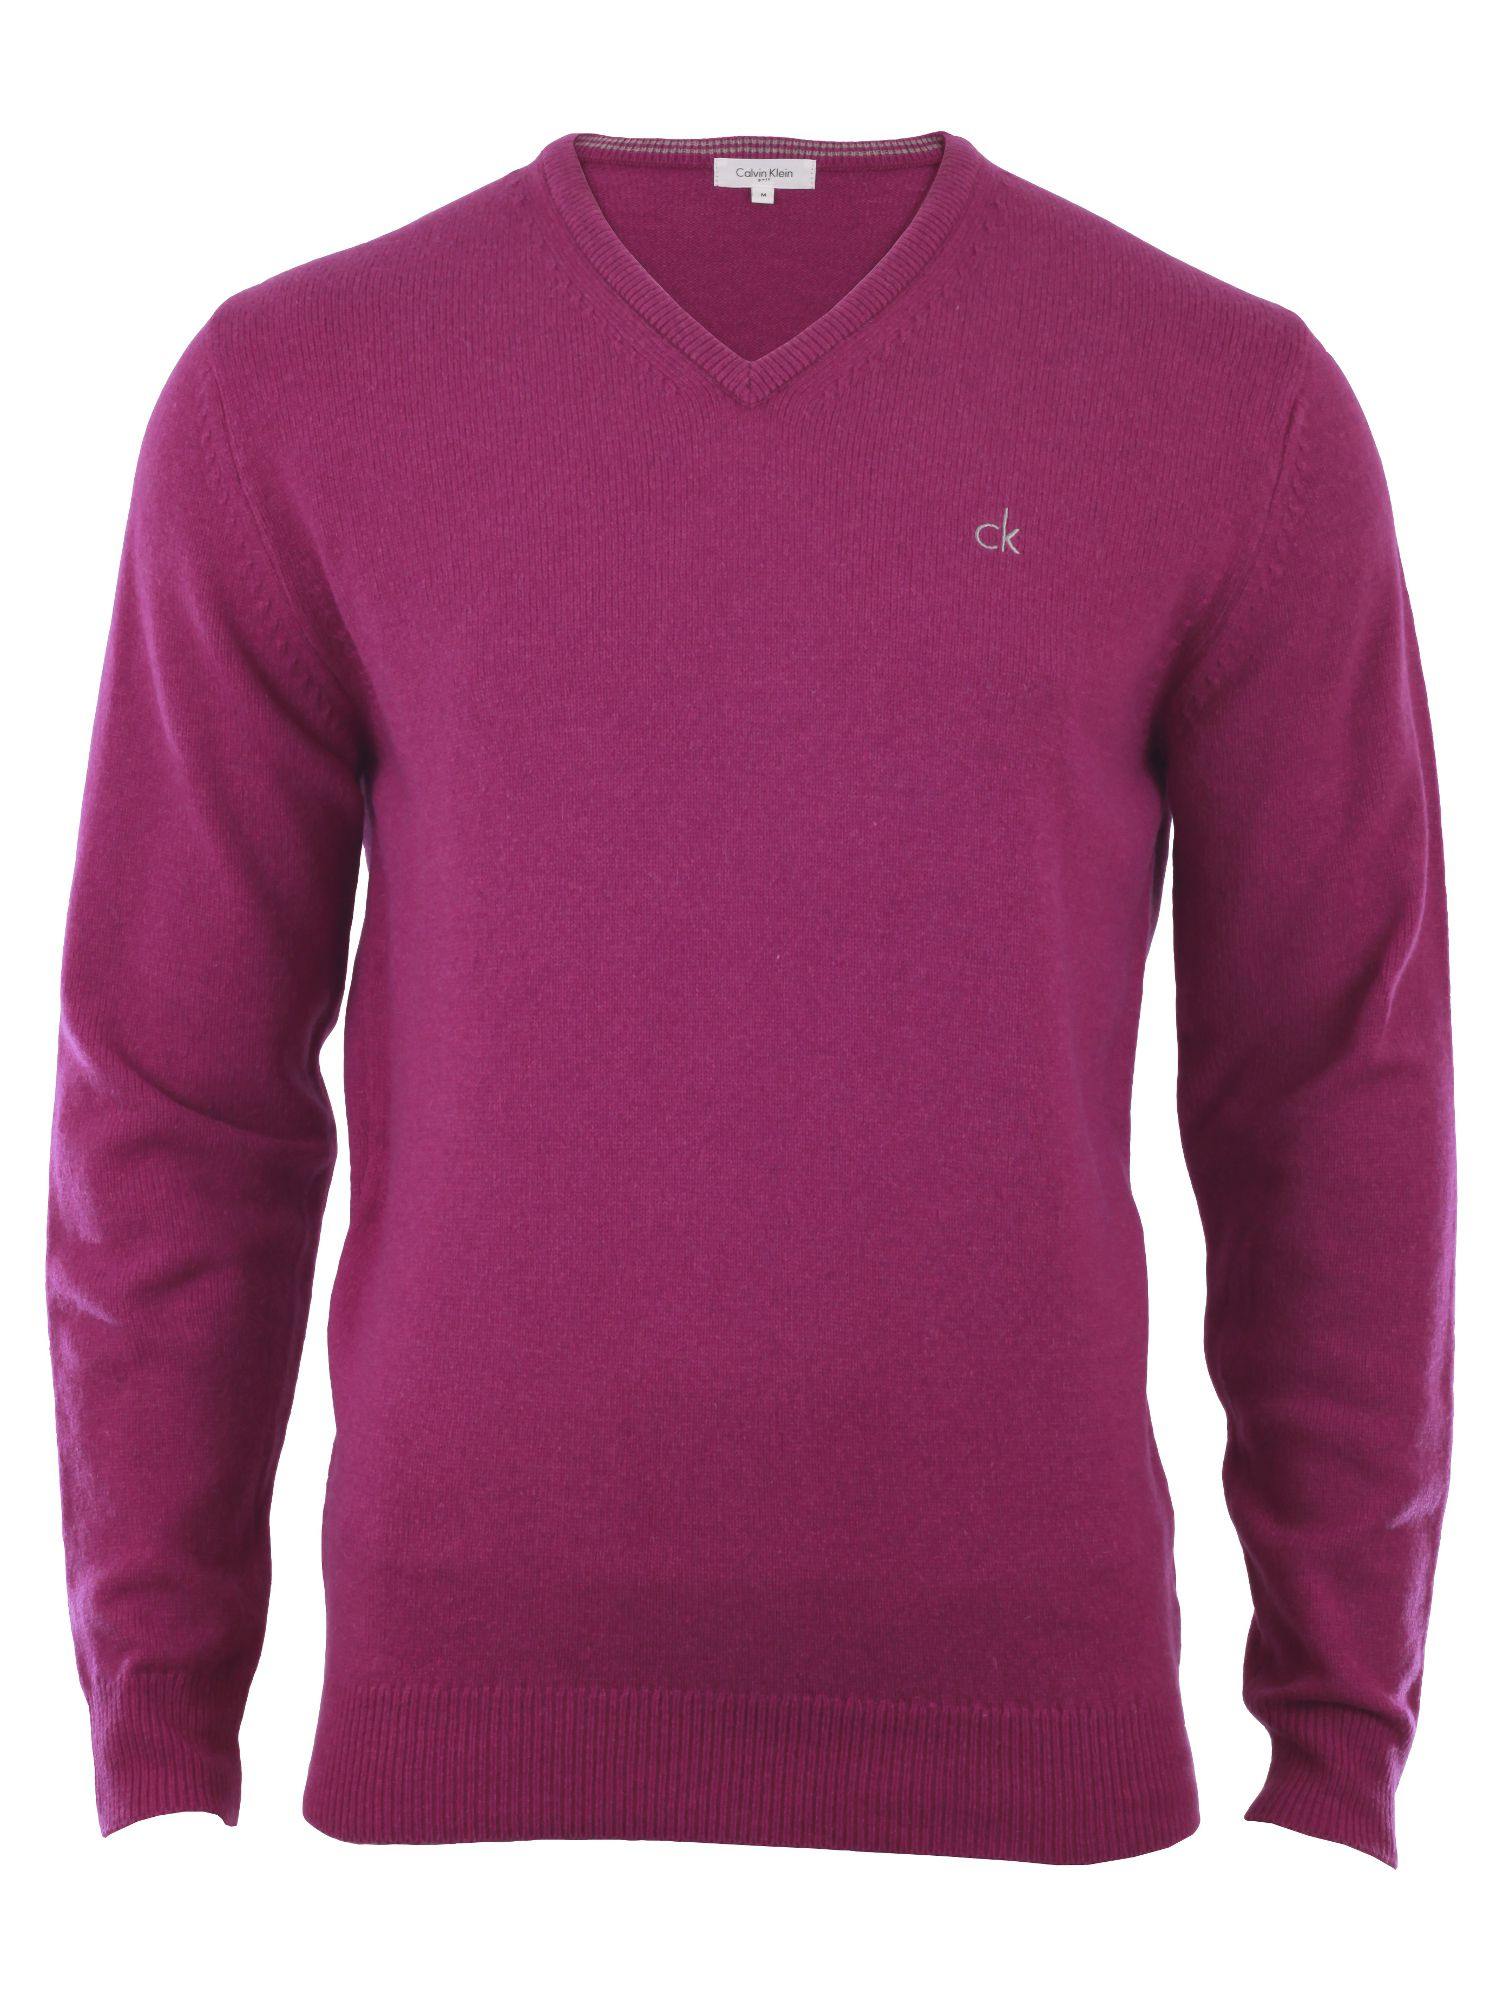 Men's Calvin Klein Golf Lambswool sweater, Raspberry